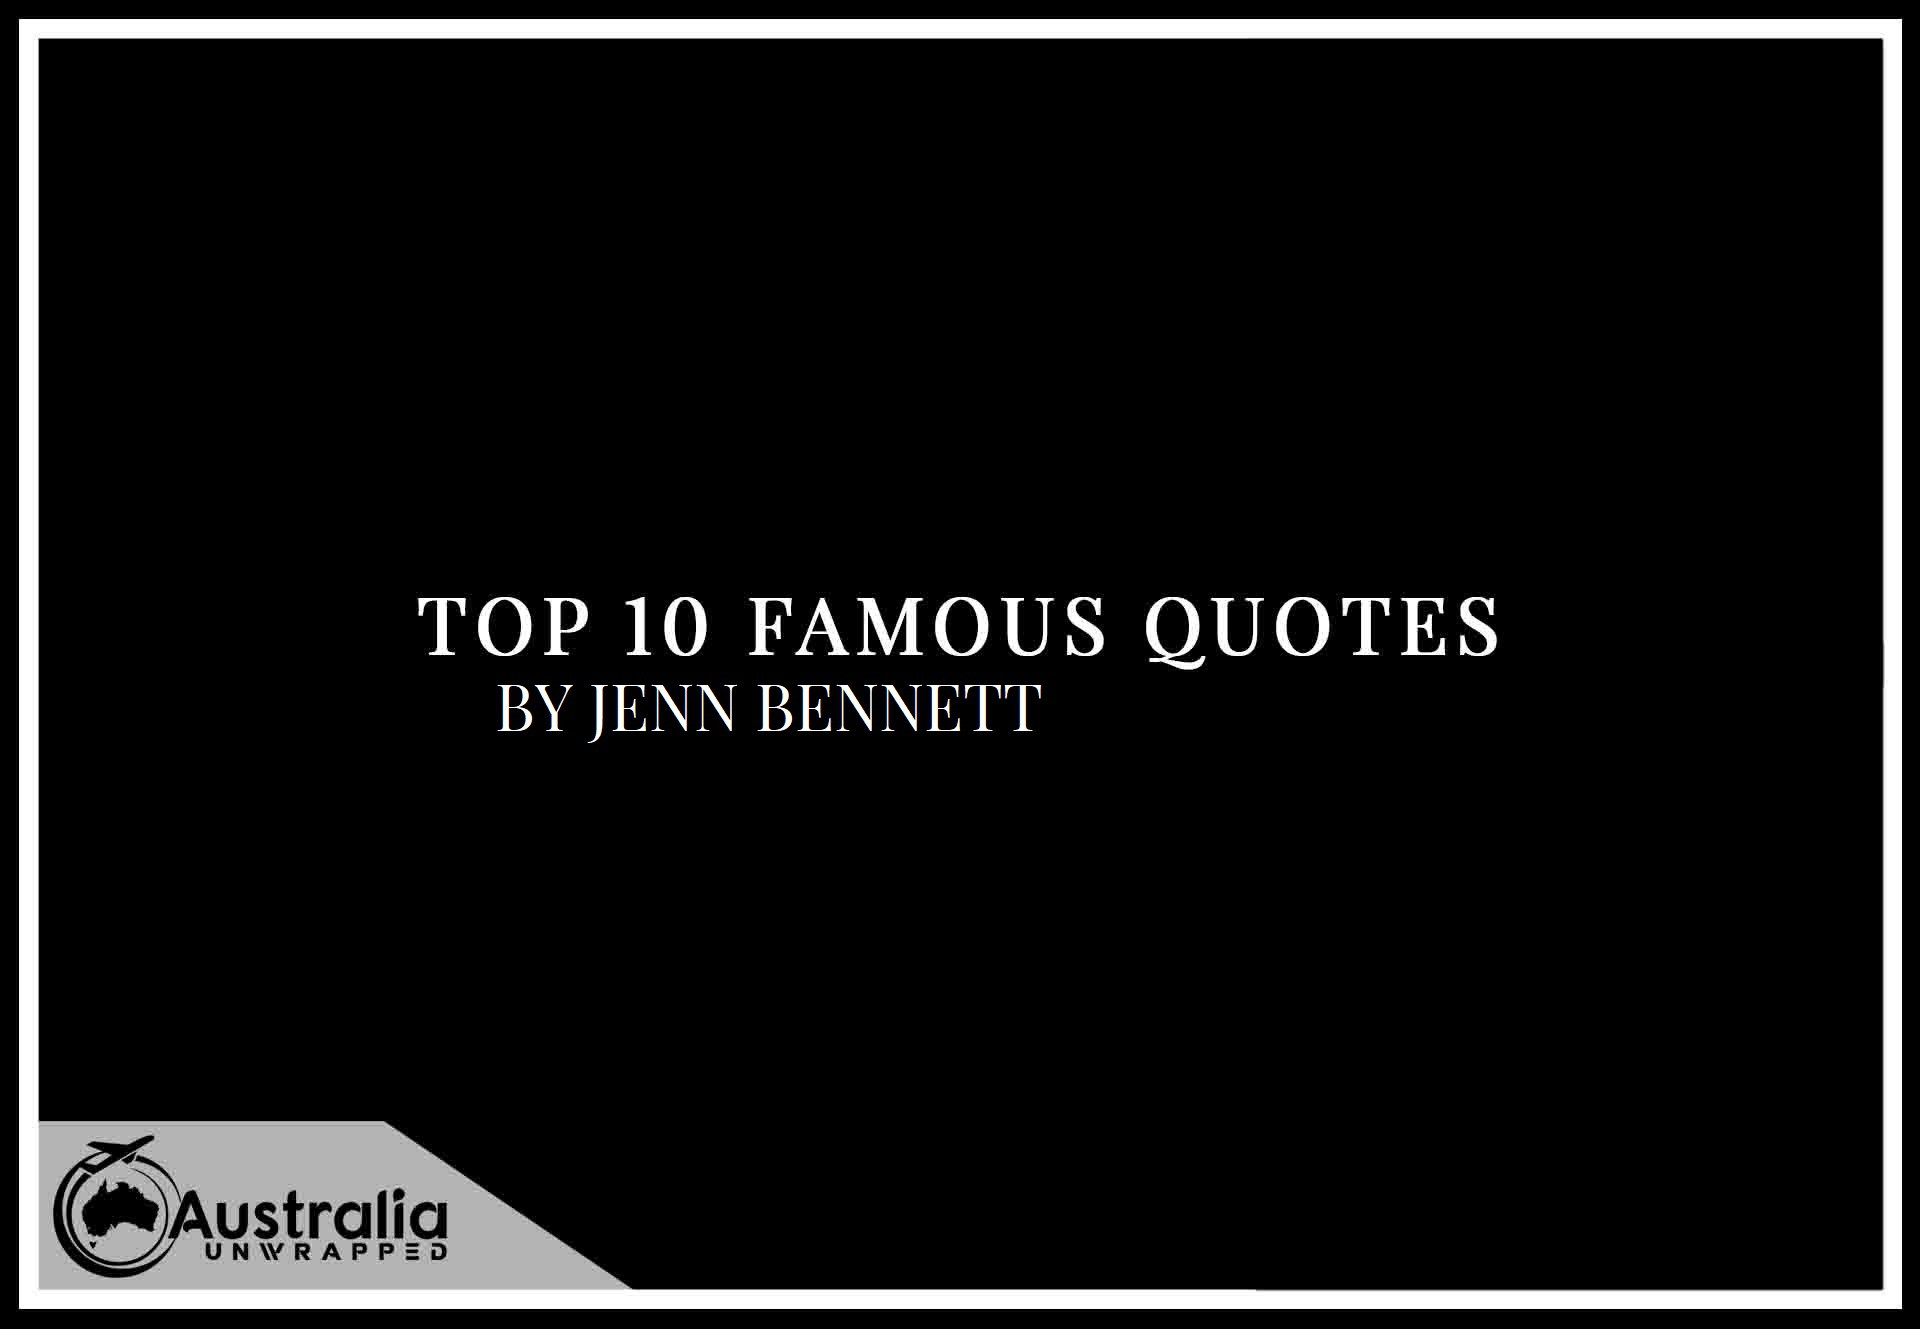 Top 10 Famous Quotes by Author Jenn Bennett